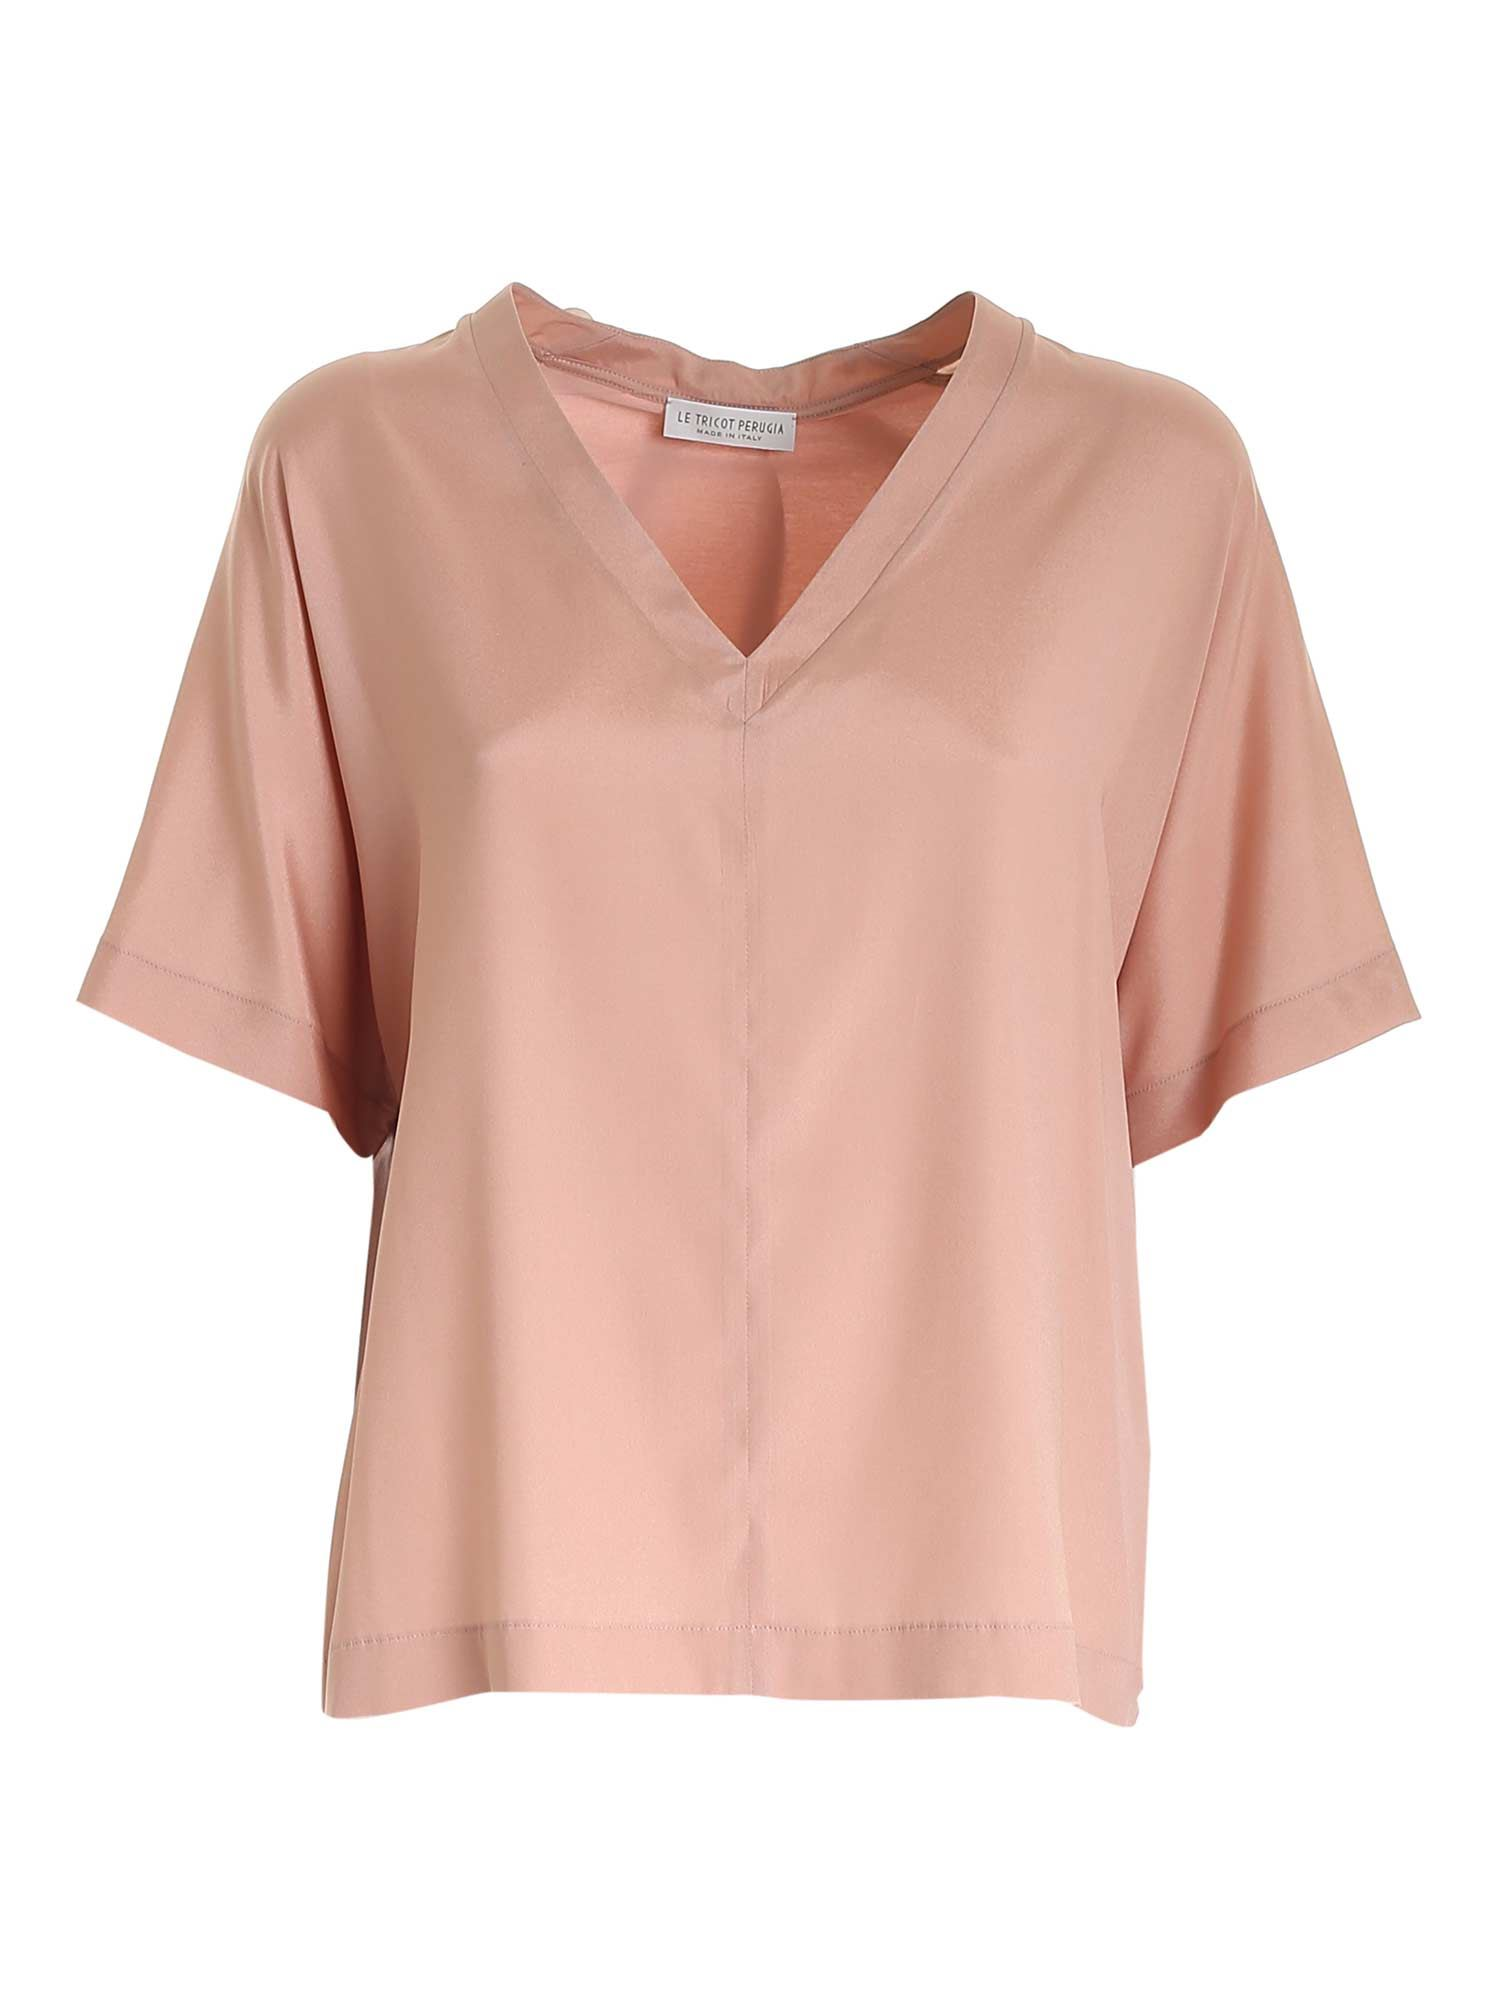 Le Tricot Perugia Silks BOXY T-SHIRT IN ANTIQUE PINK